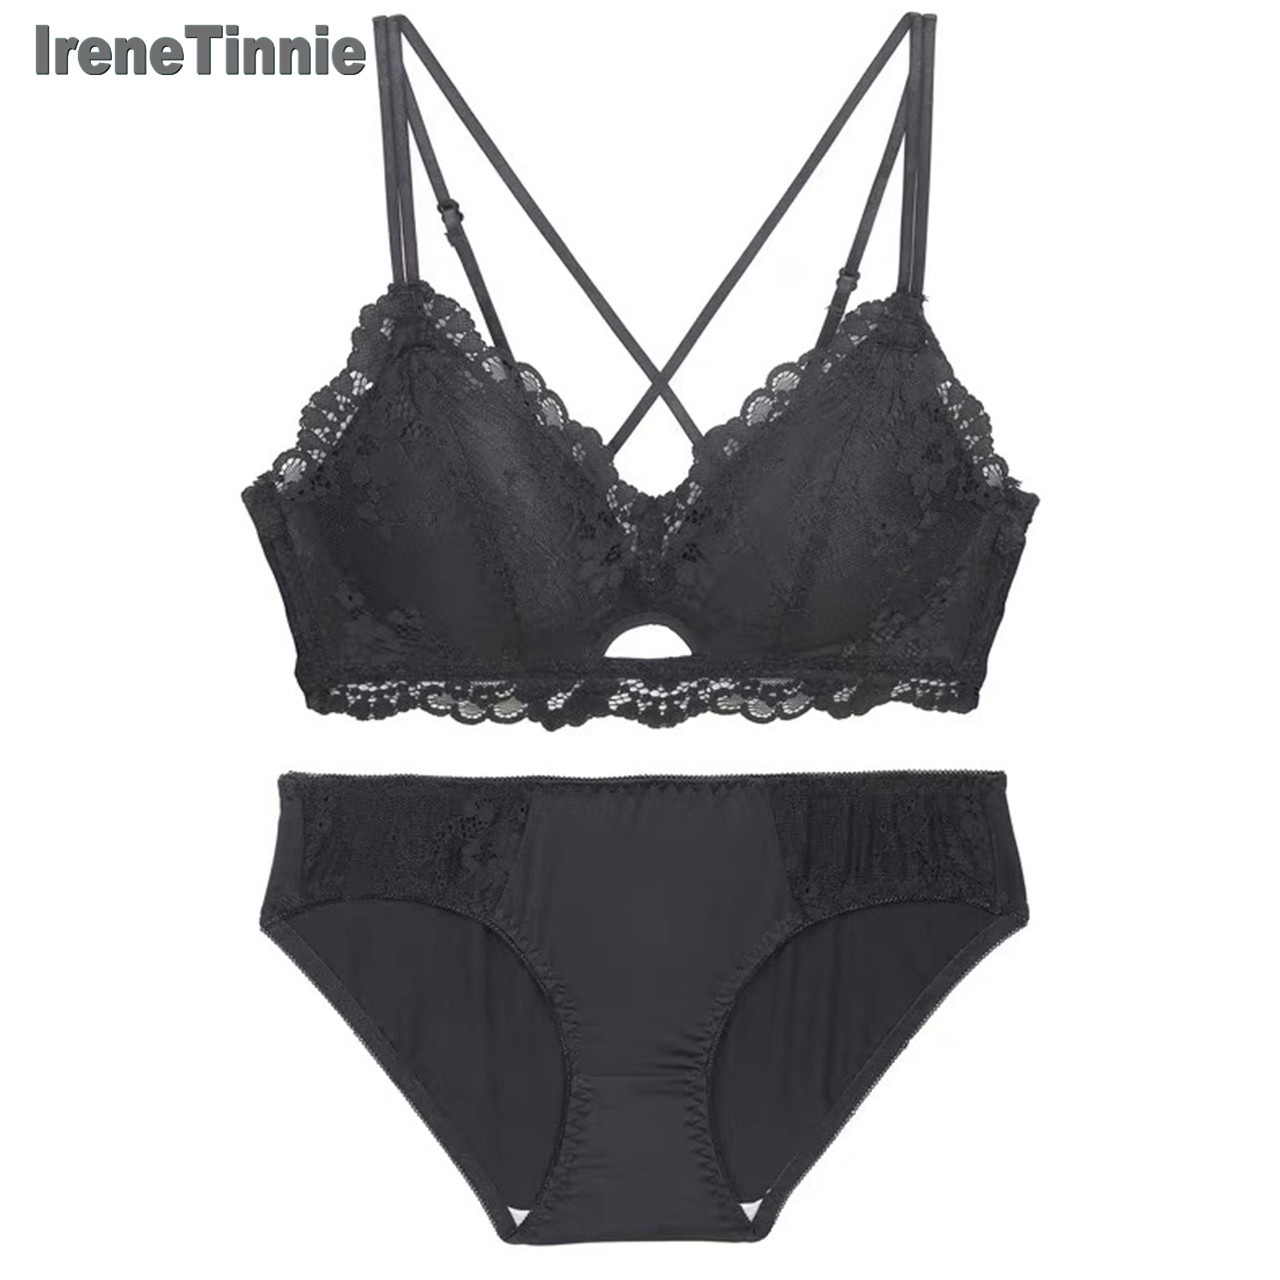 IRENE TINNIE Women's Sexy Lace Romantic Seduction Charming Lingerie Young Push Up No Steel Rib Hollowout Natural Fresh Bra Set